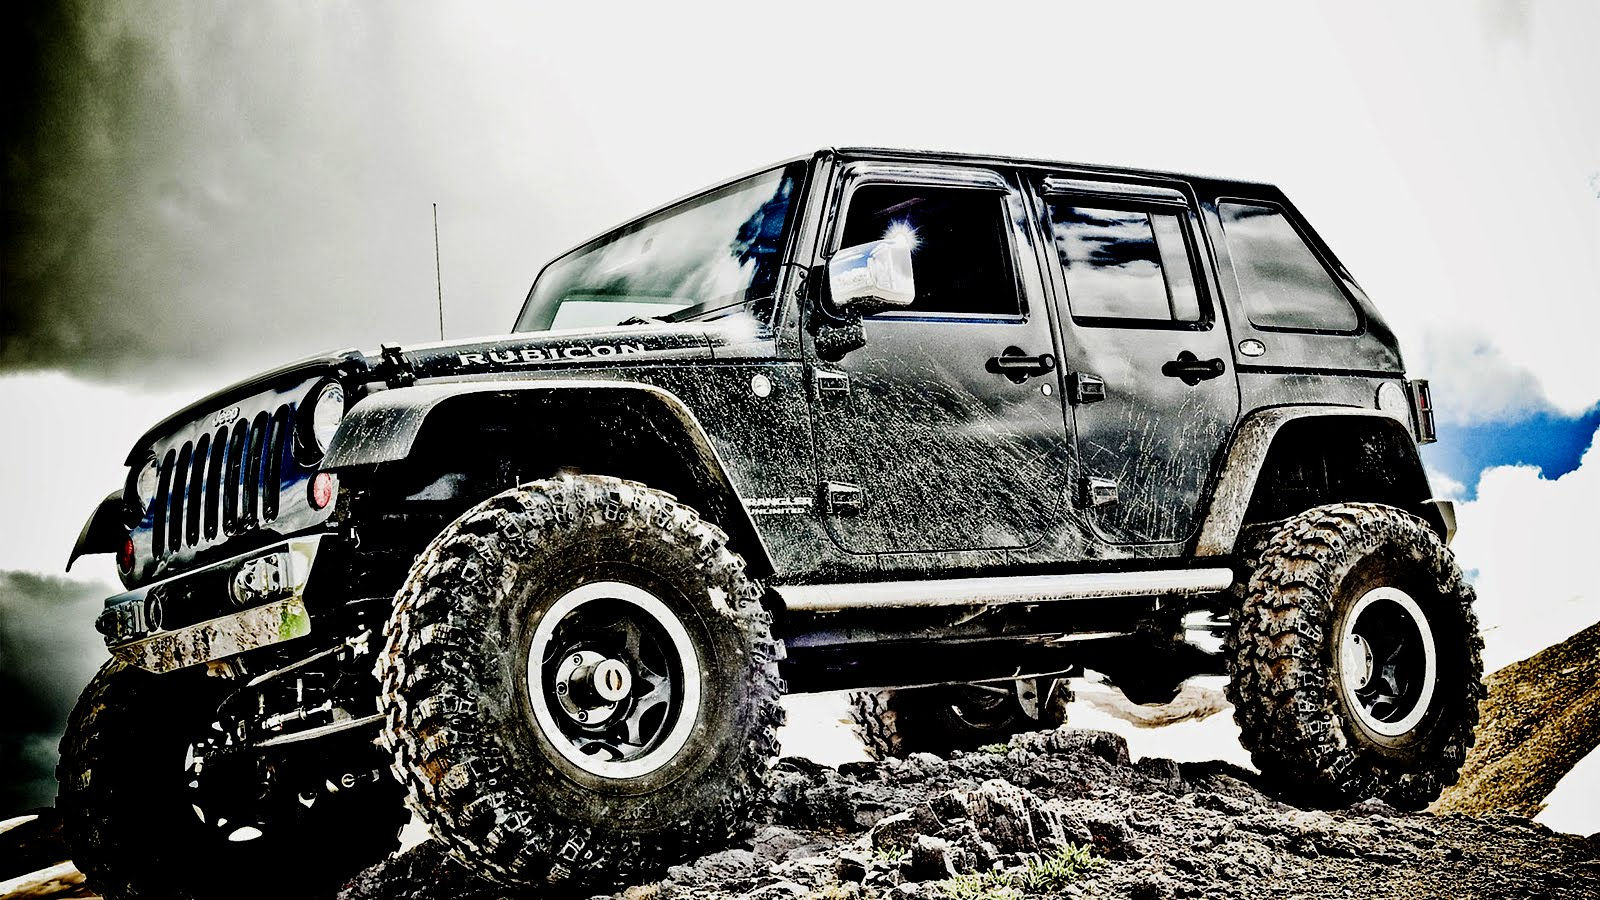 File Size: 366998 Bytes. Dimensions: 1024 X 768 Pixels. JEEP Free Wallpaper  For Ur Phone , Car Wallpaper , HD Car Wallpaper